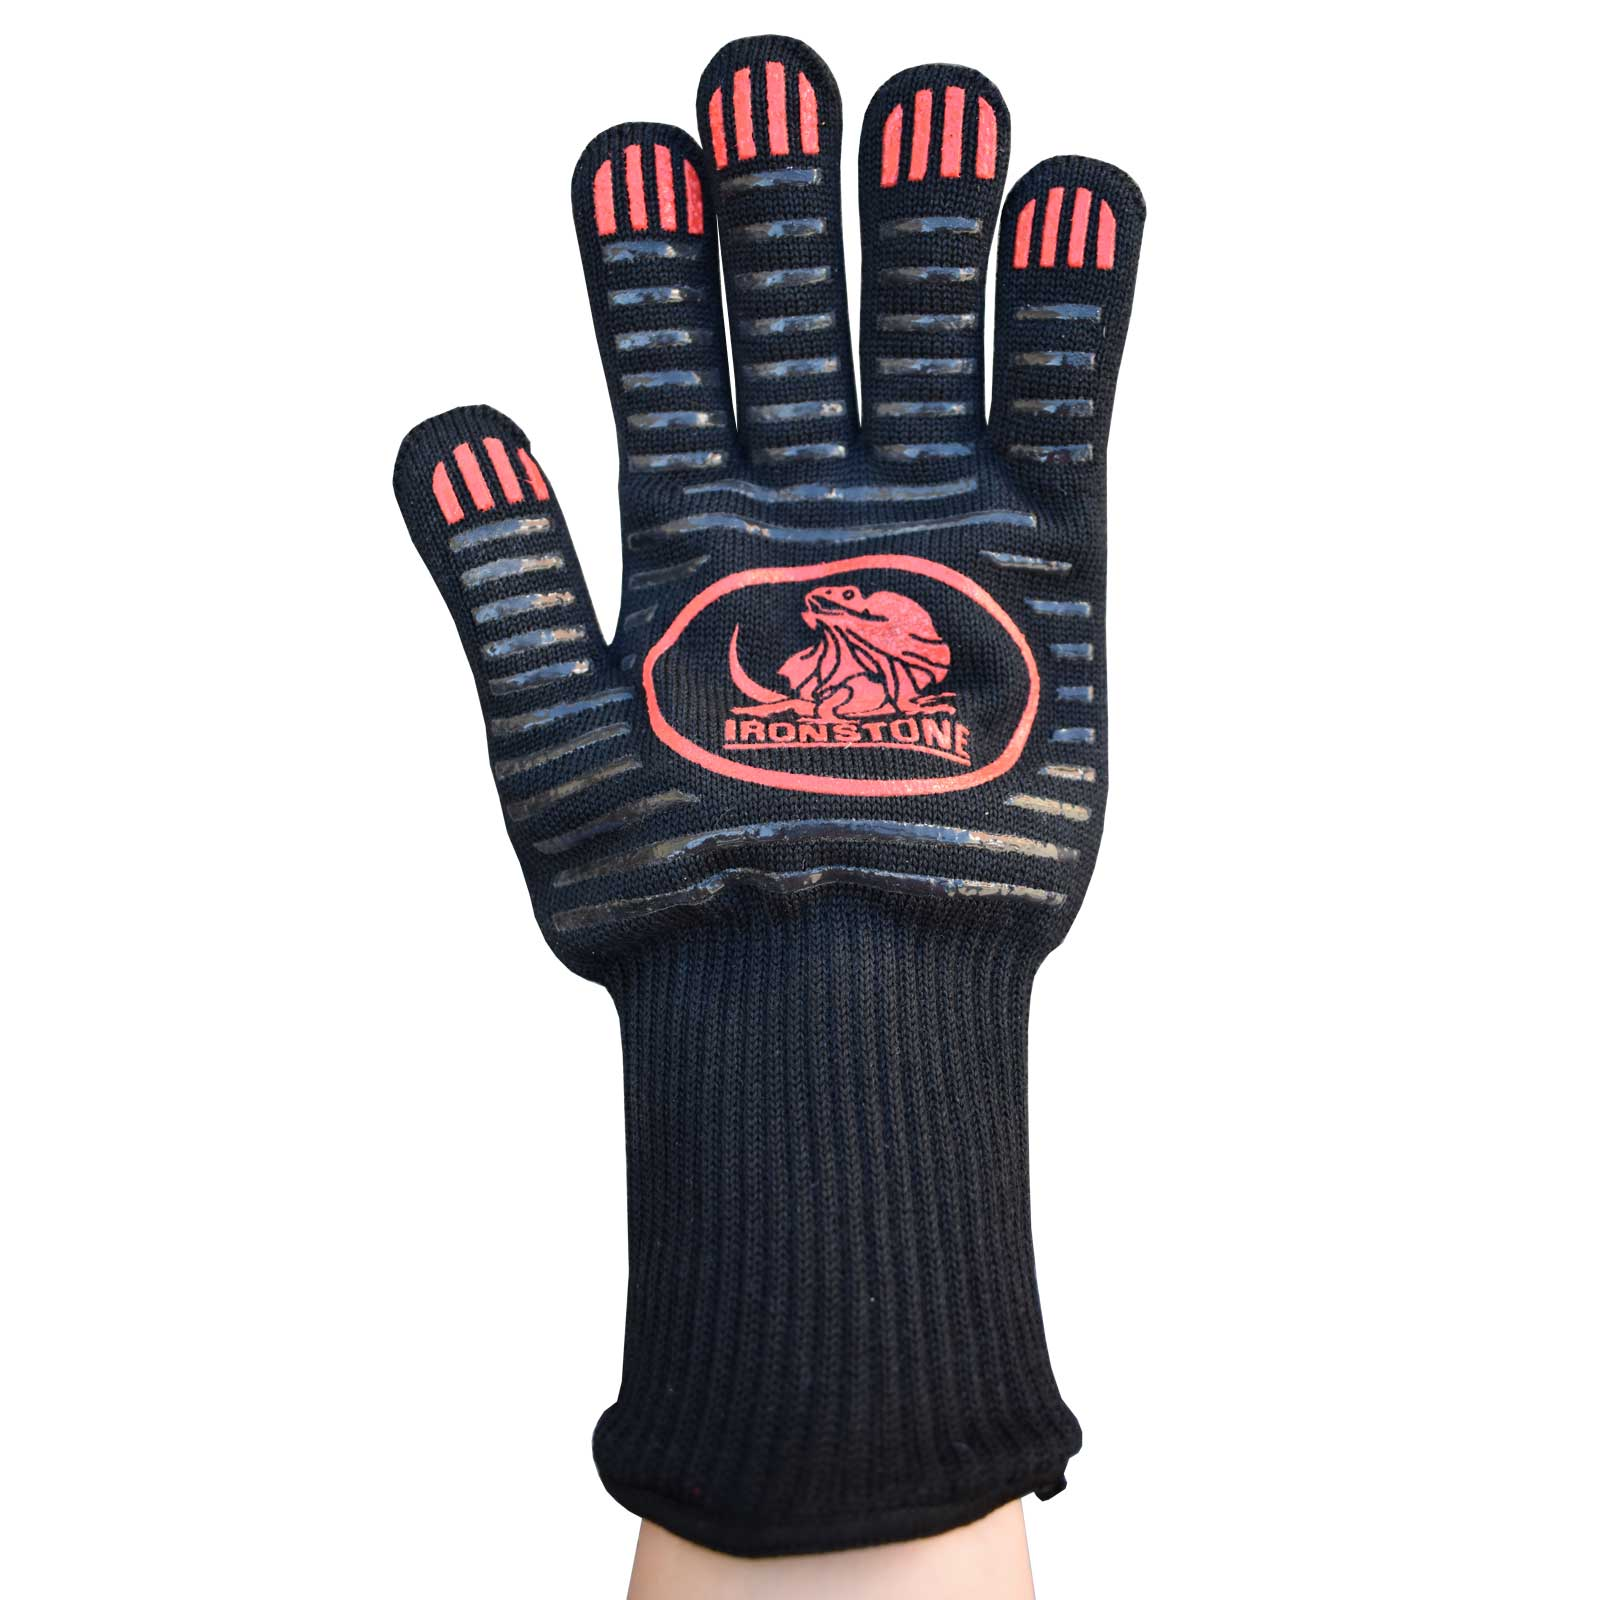 Ironstone-gloves-red